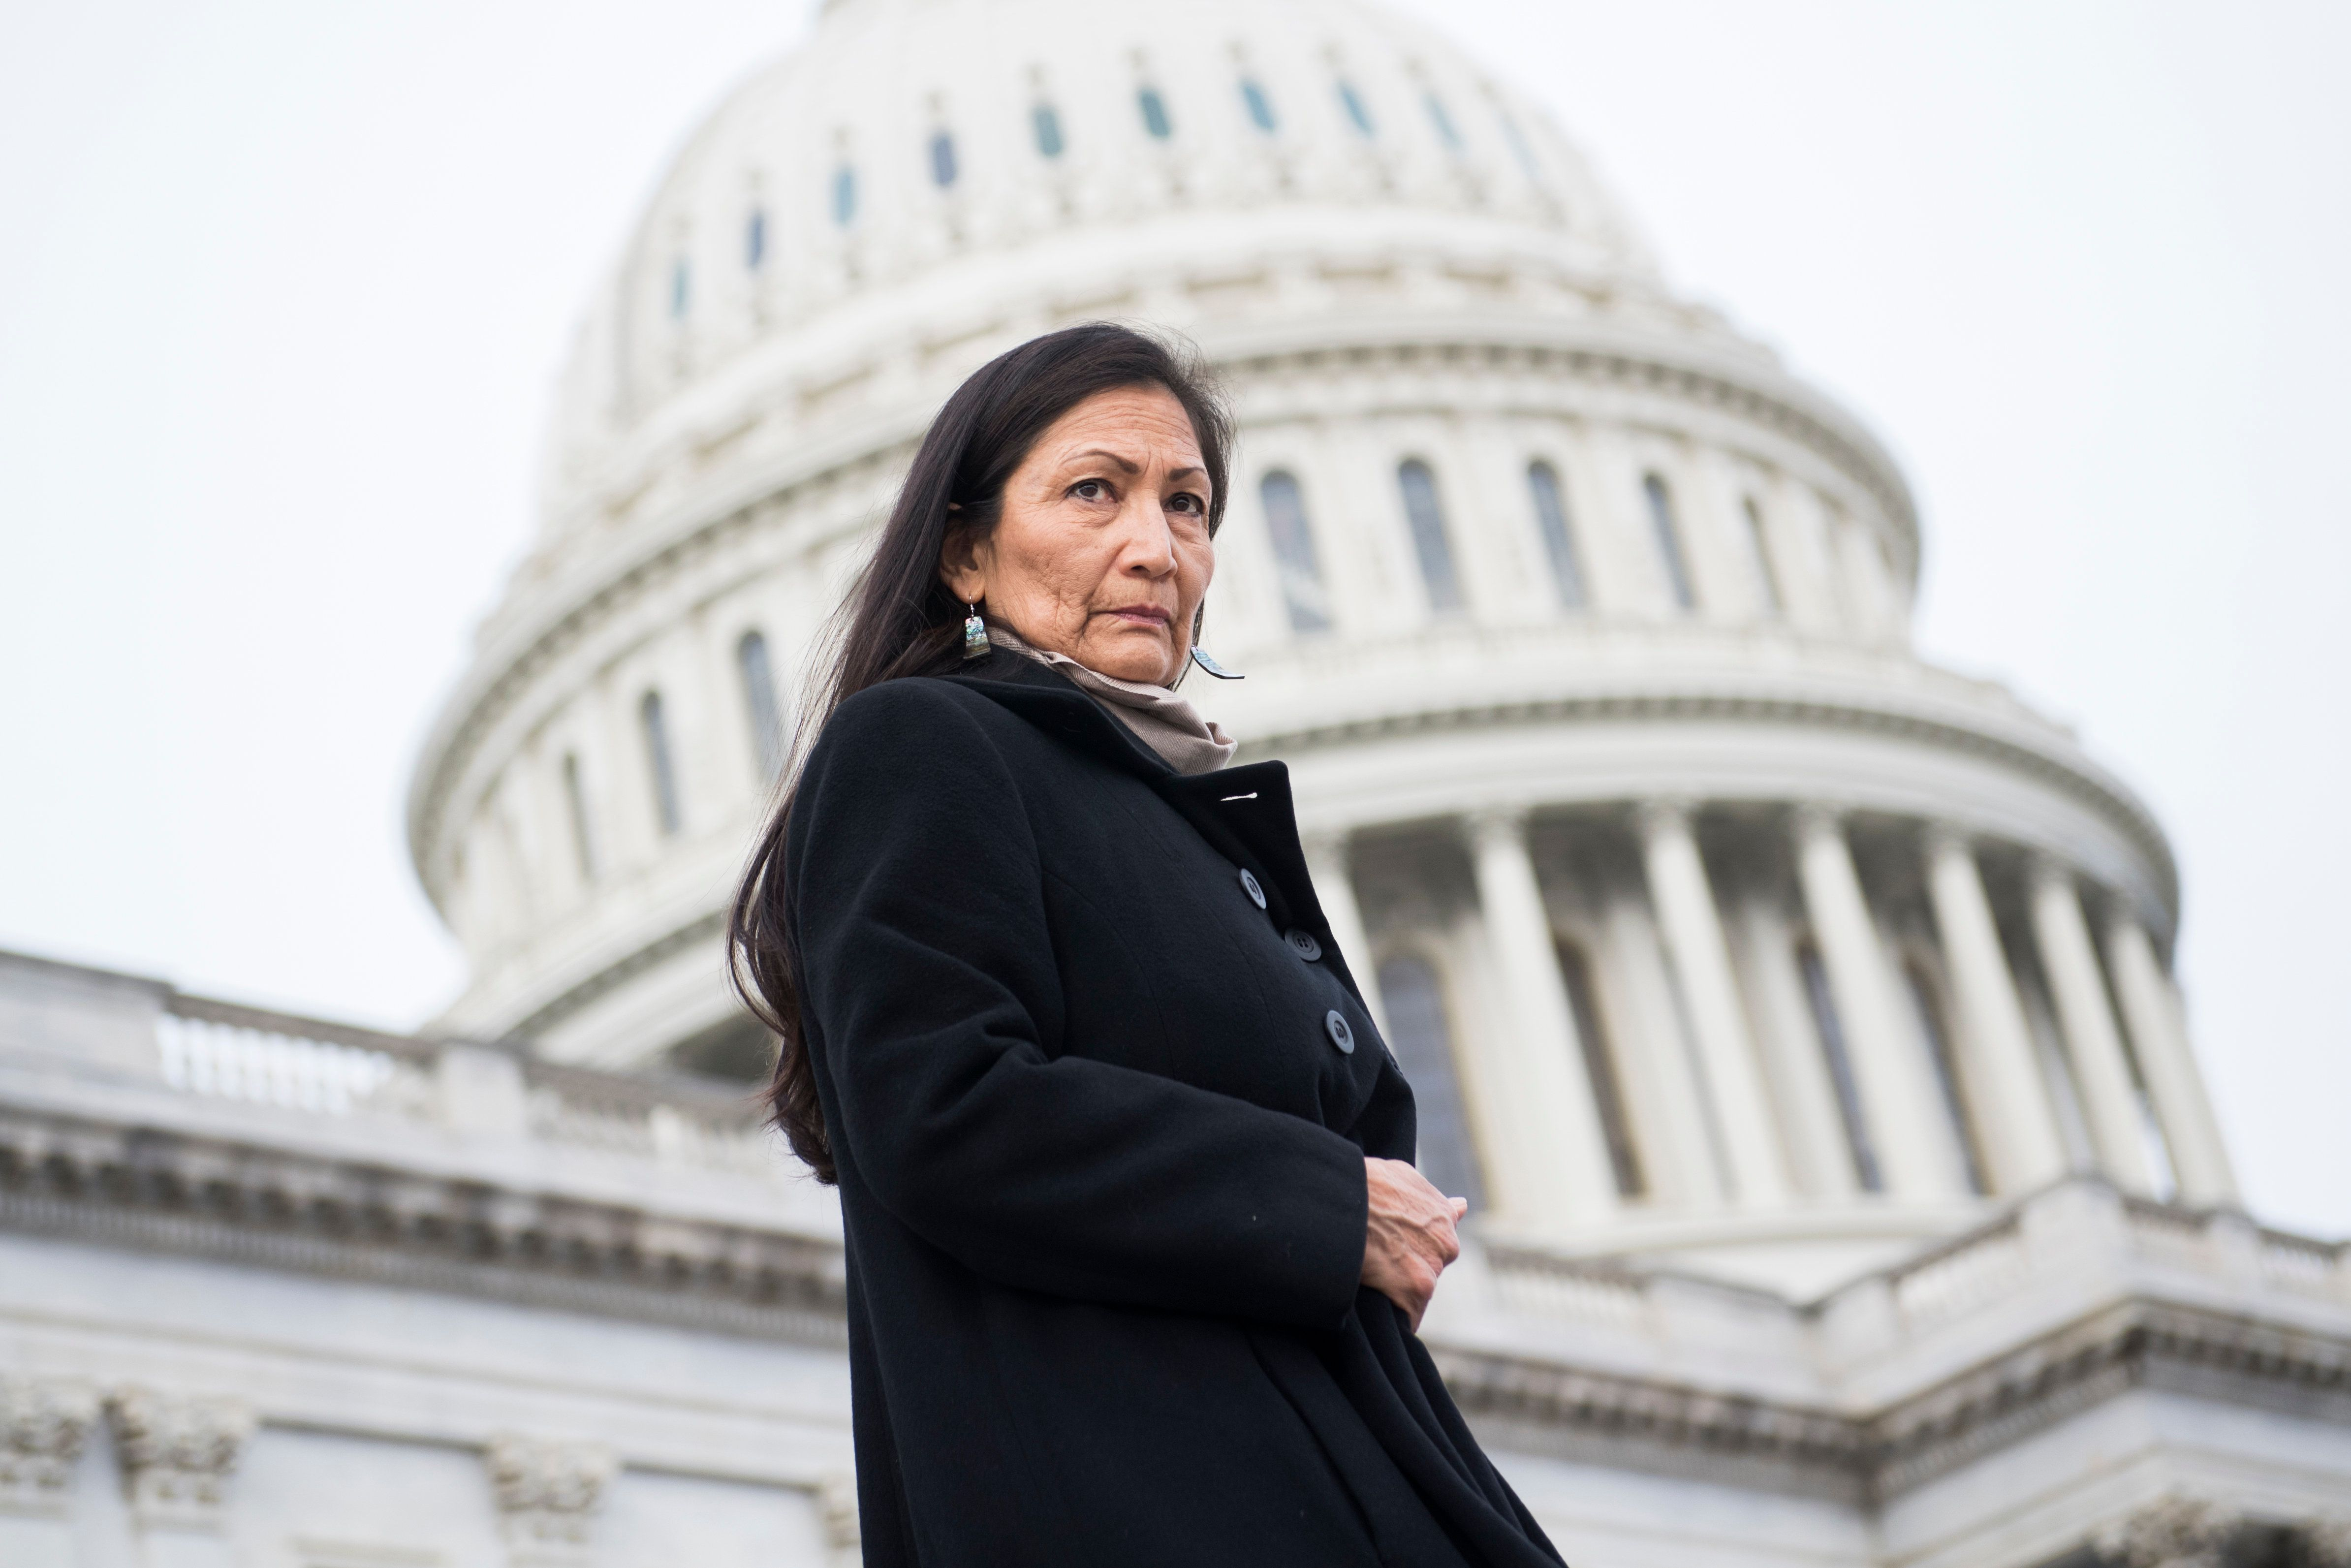 Rep. Deb Haaland (D-N.M.) just showed why it matters that Native American women are represented in Congress....